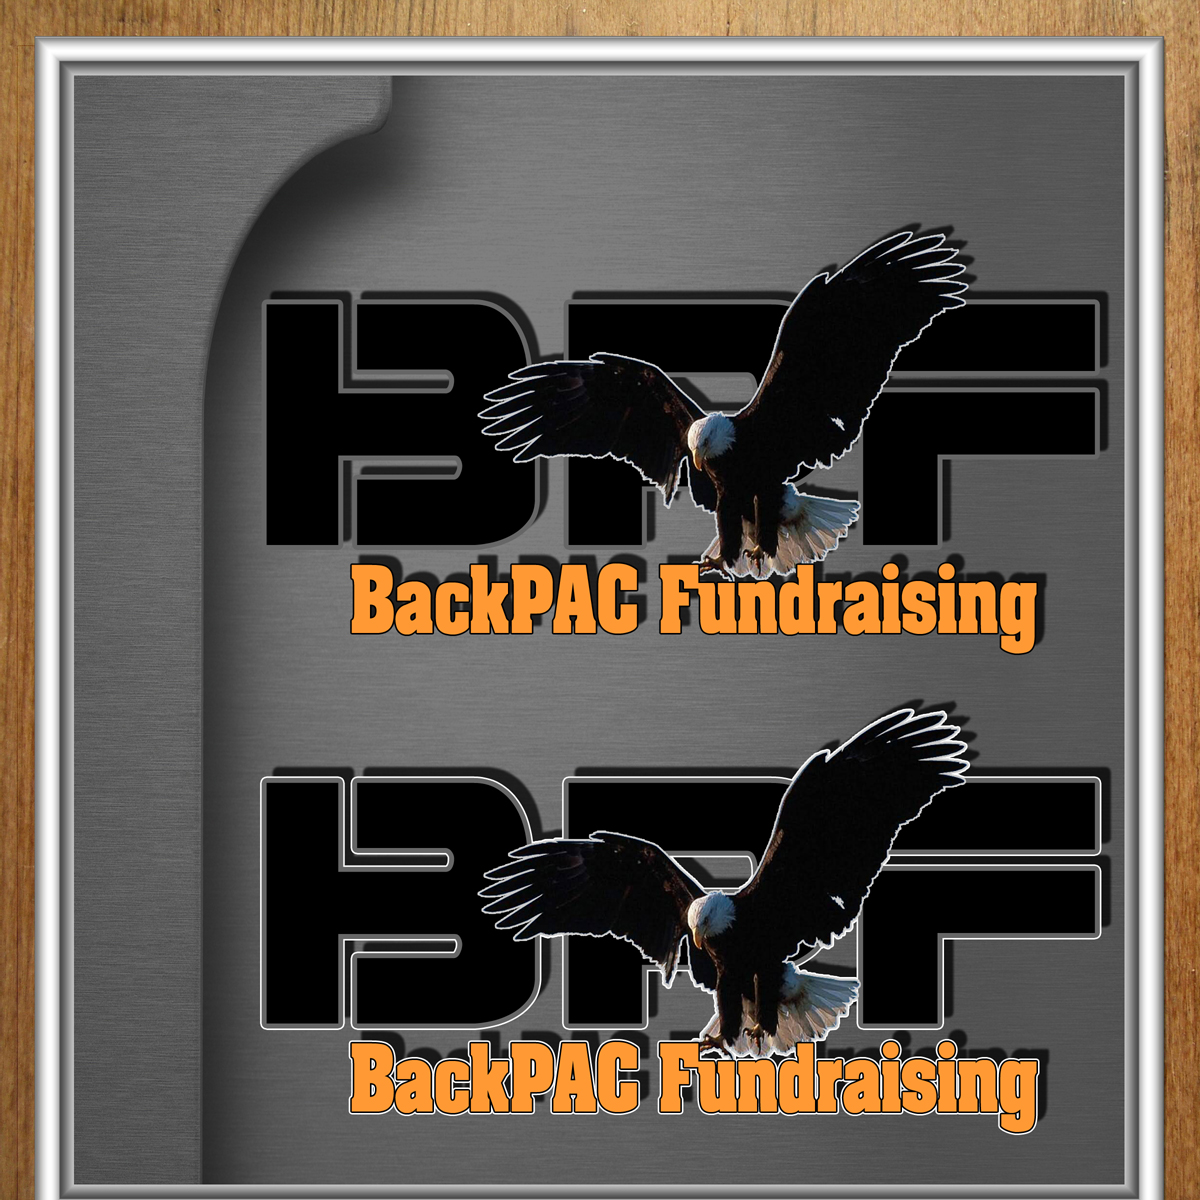 Logo Design by MITUCA ANDREI - Entry No. 82 in the Logo Design Contest Imaginative Logo Design for BackPAC Fundraising.